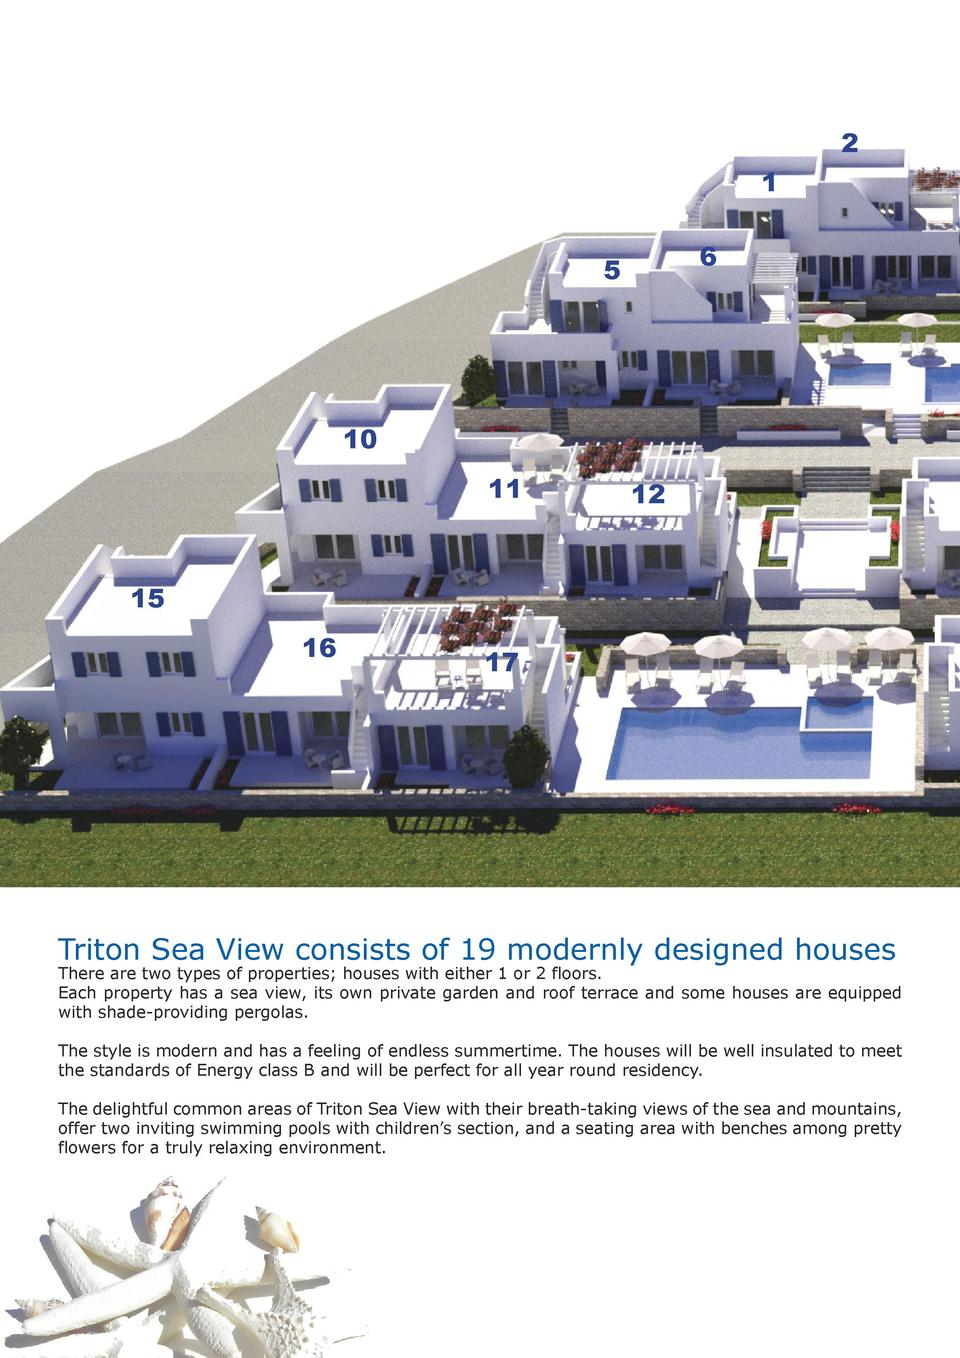 2 1 6  5  10 11  12  15 16  17  Triton Sea View consists of 19 modernly designed houses  There are two types of properties...